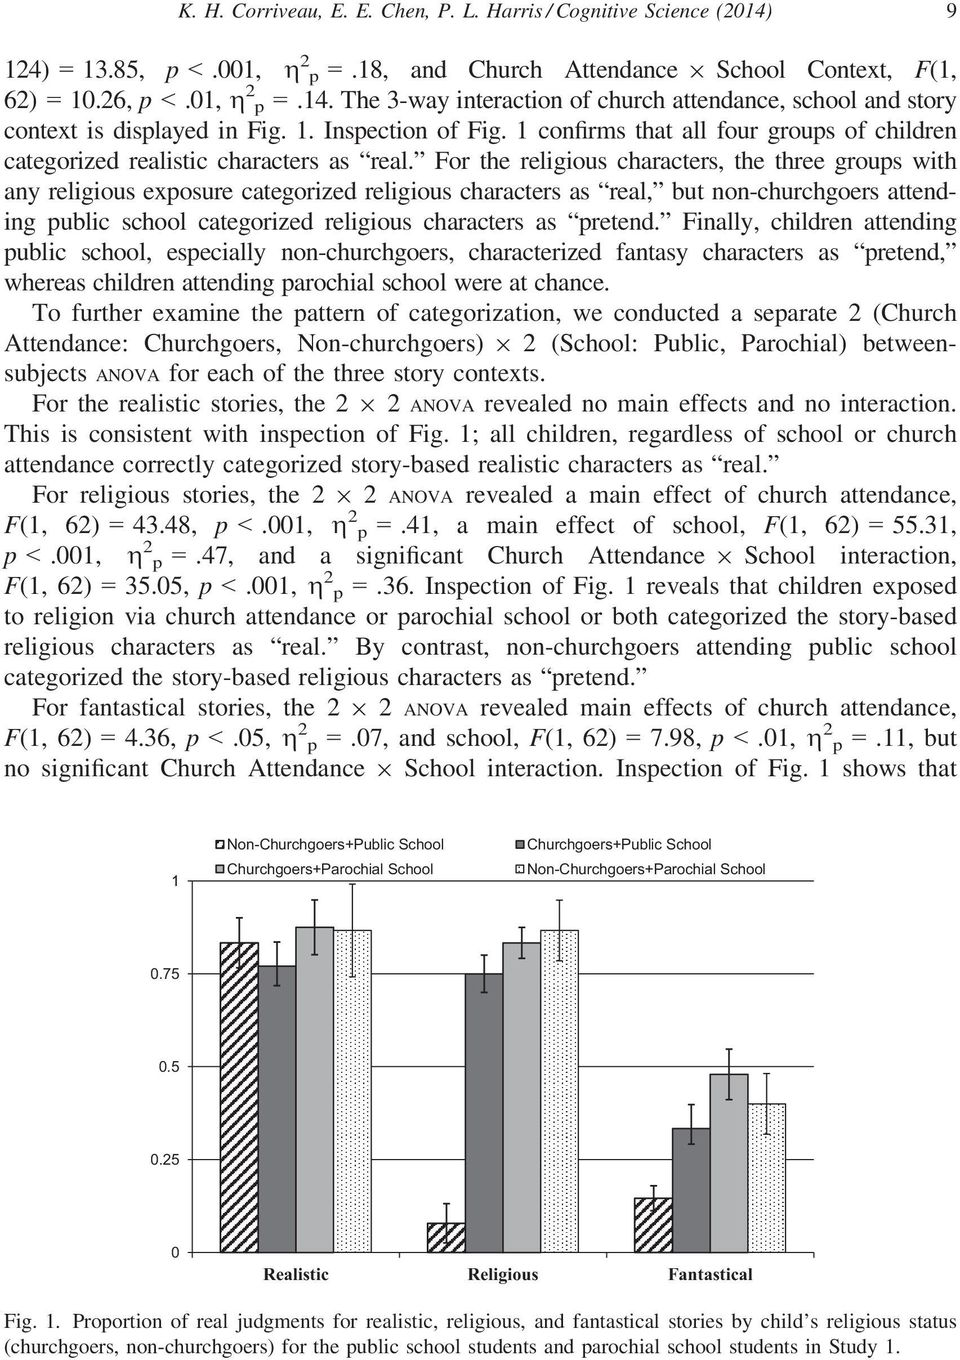 For the religious characters, the three groups with any religious exposure categorized religious characters as real, but non-churchgoers attending public school categorized religious characters as